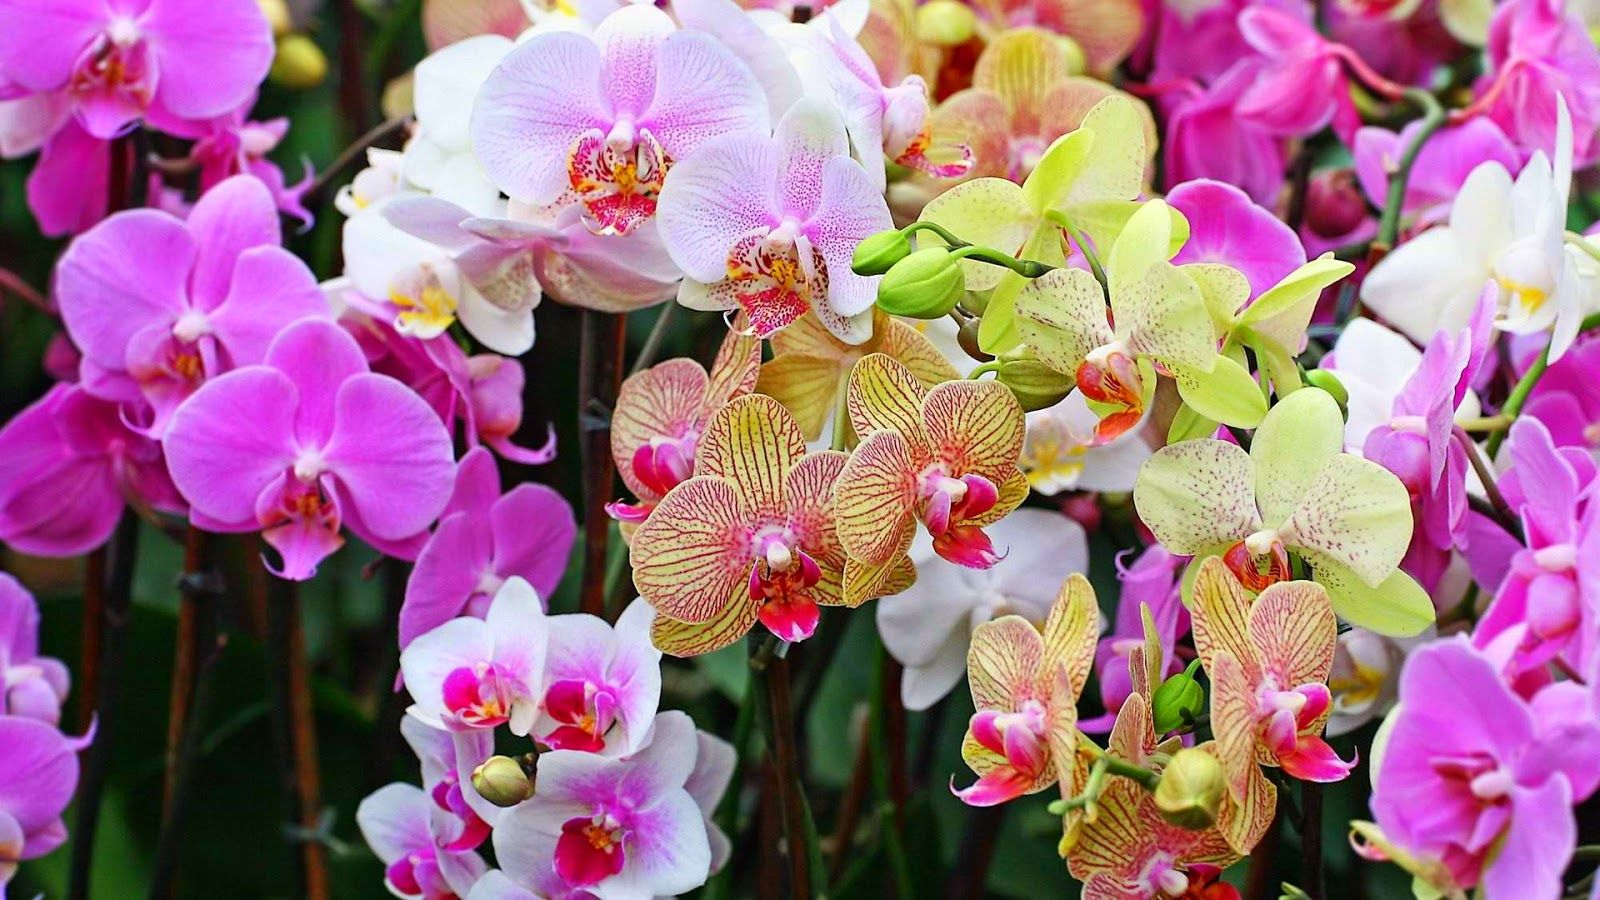 Orchid Wallpaper (70 Wallpapers) - HD Wallpapers